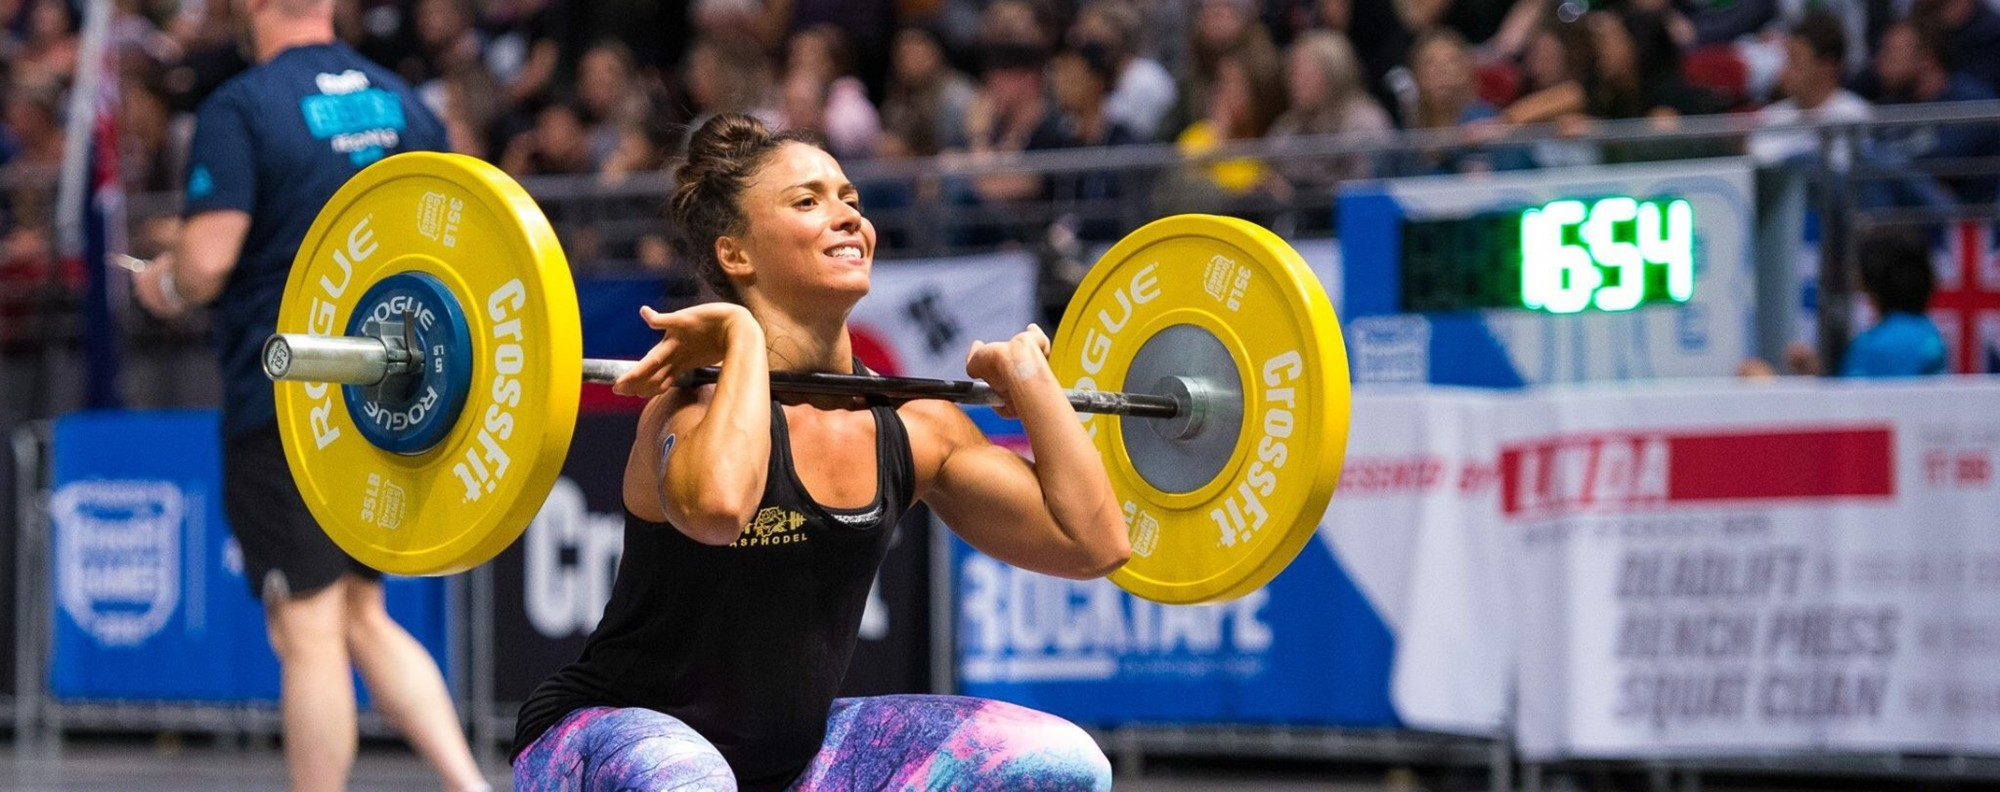 Victoria Campos at the CrossFit regional. She will be one of your coaches at Asphodel in Kennedy Town. Photo: CrossFit